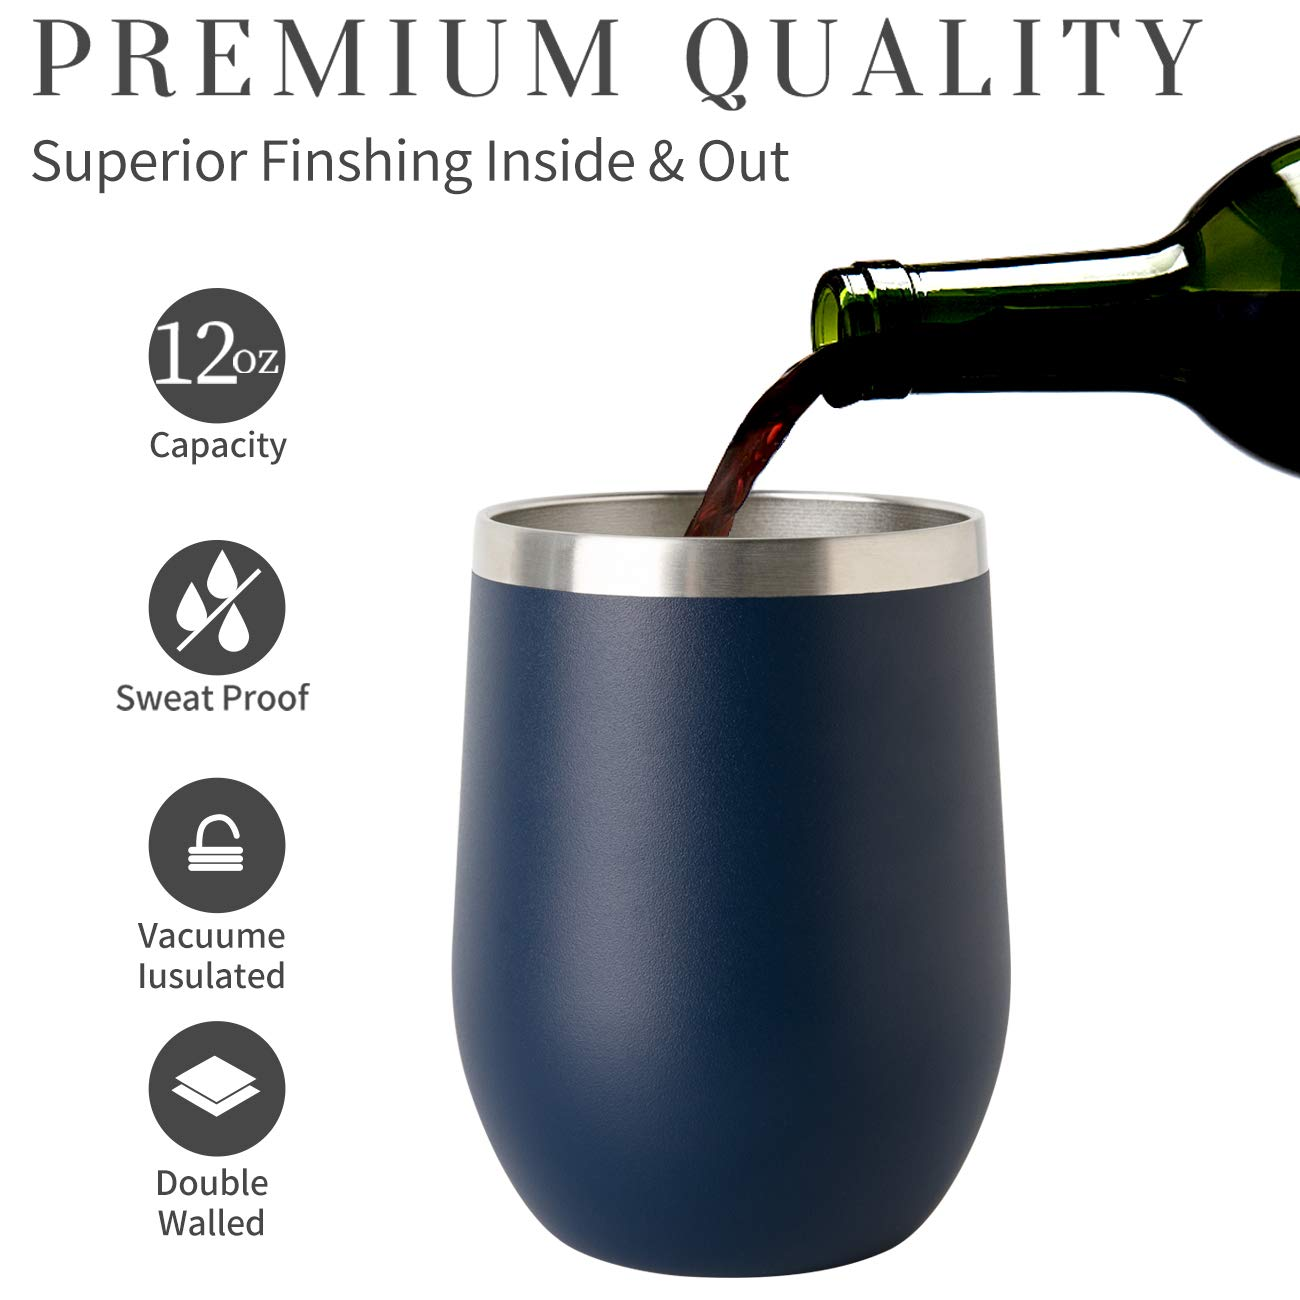 ONEB Stainless Steel Wine Tumbler with Lid, 12 OZ | Double Wall Vacuum Insulated Travel Tumbler Cup for Coffee, Wine, Cocktails, Ice Cream Cup With Lid (Navy, 12OZ-8pack) by ONEB (Image #4)